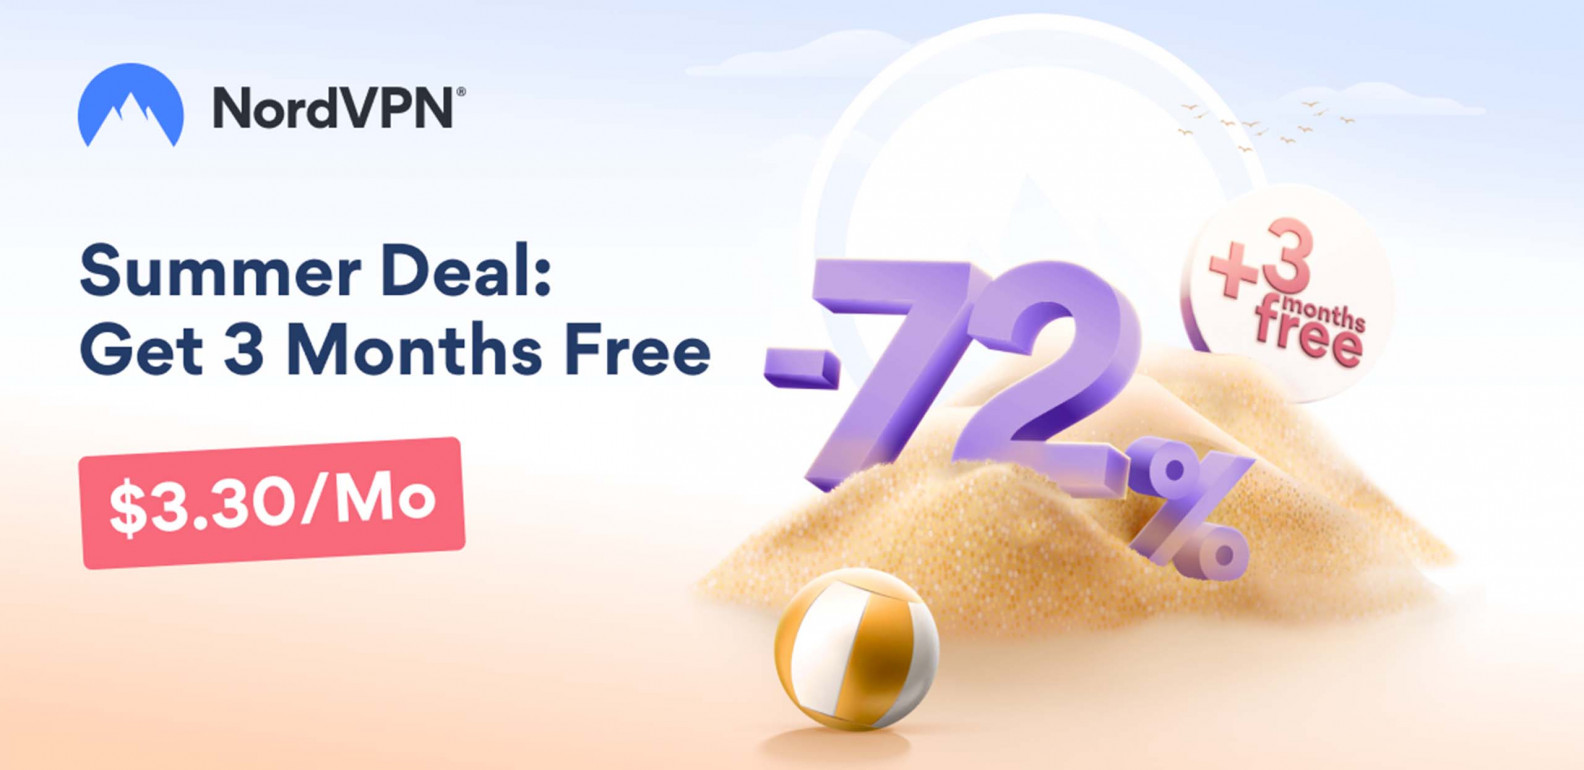 Get 72% off a 2-year plan with NordVPN